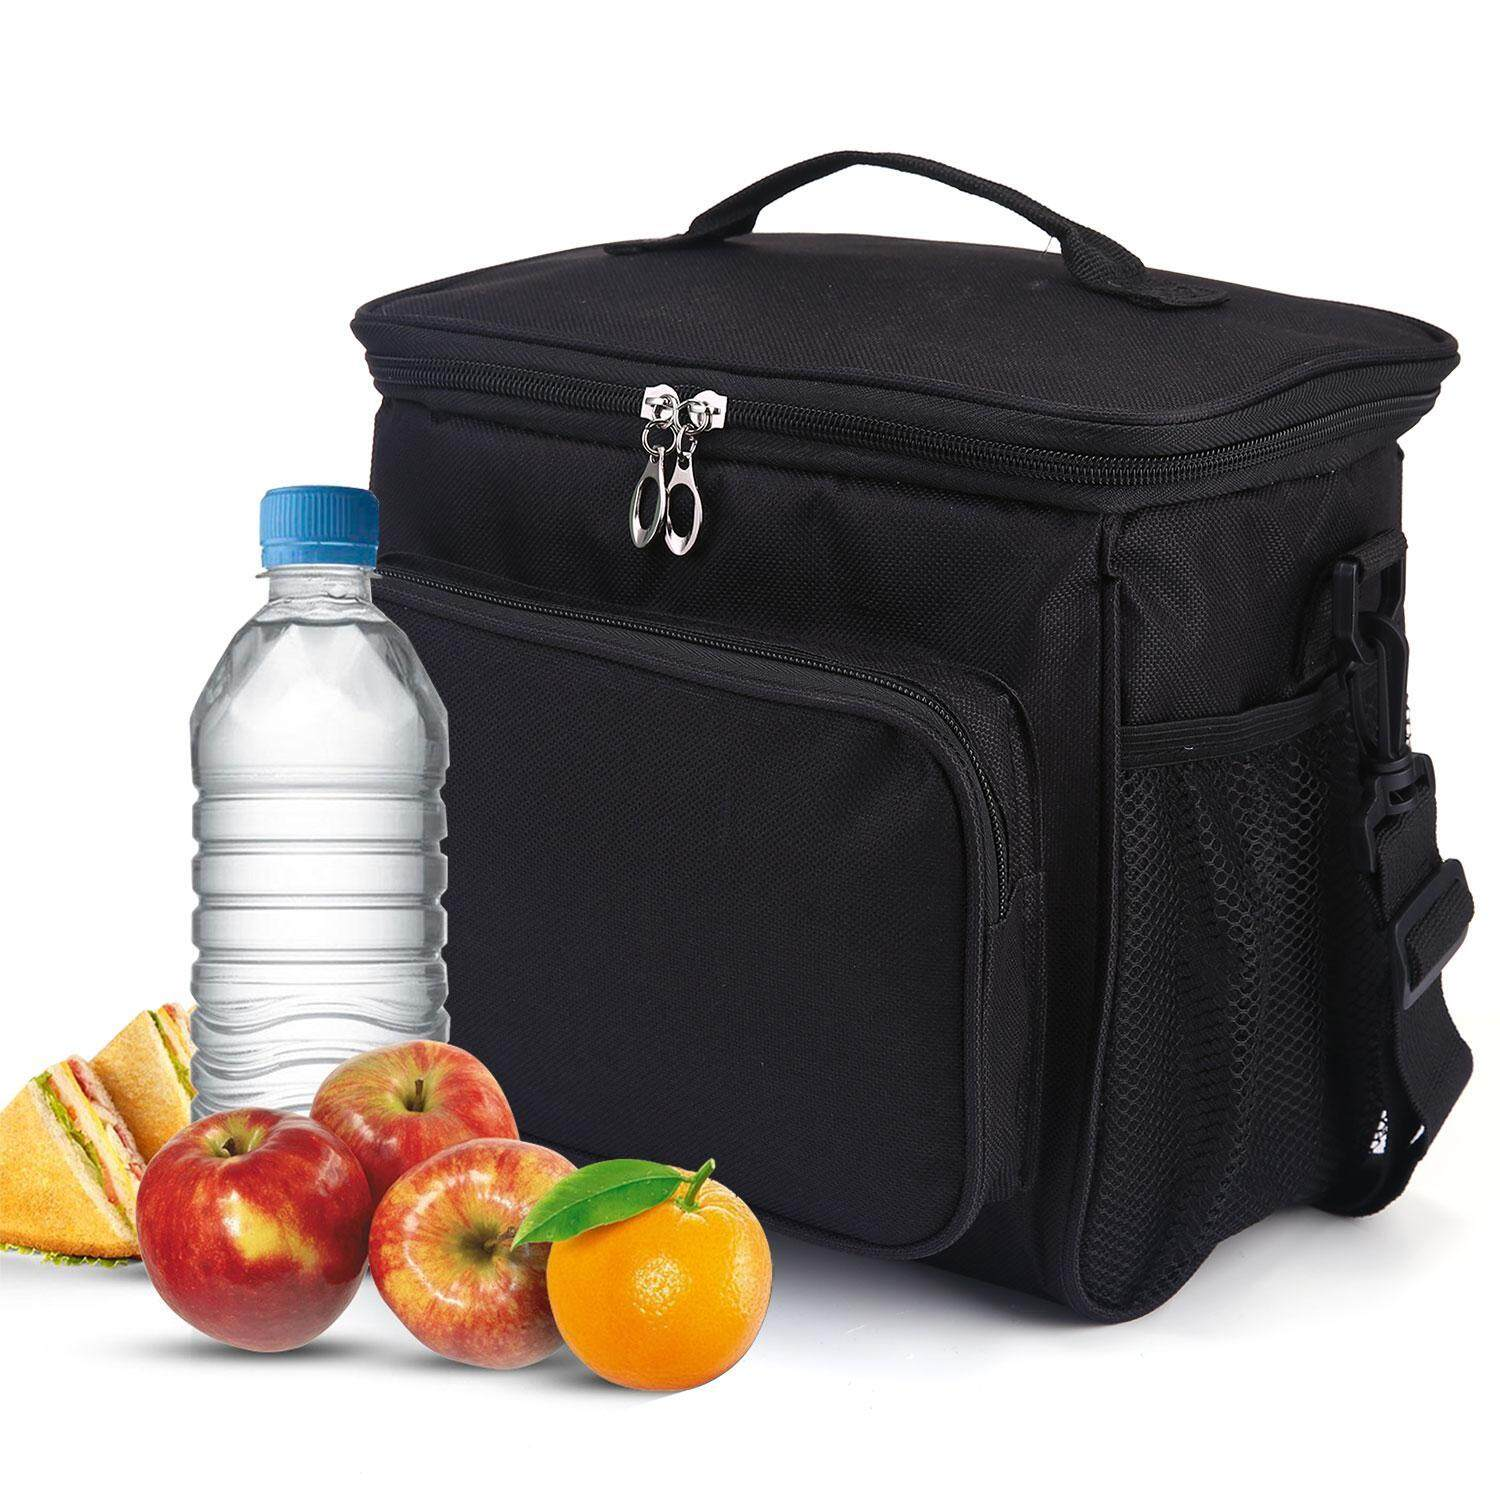 91474b85368b Fortunet Adult Lunch Bag,Insulated Lunch Box Large Cooler Tote Bag with  Double Deck & Adjustable Shoulder for Men,Women /Office ,School ,Picnic -  intl